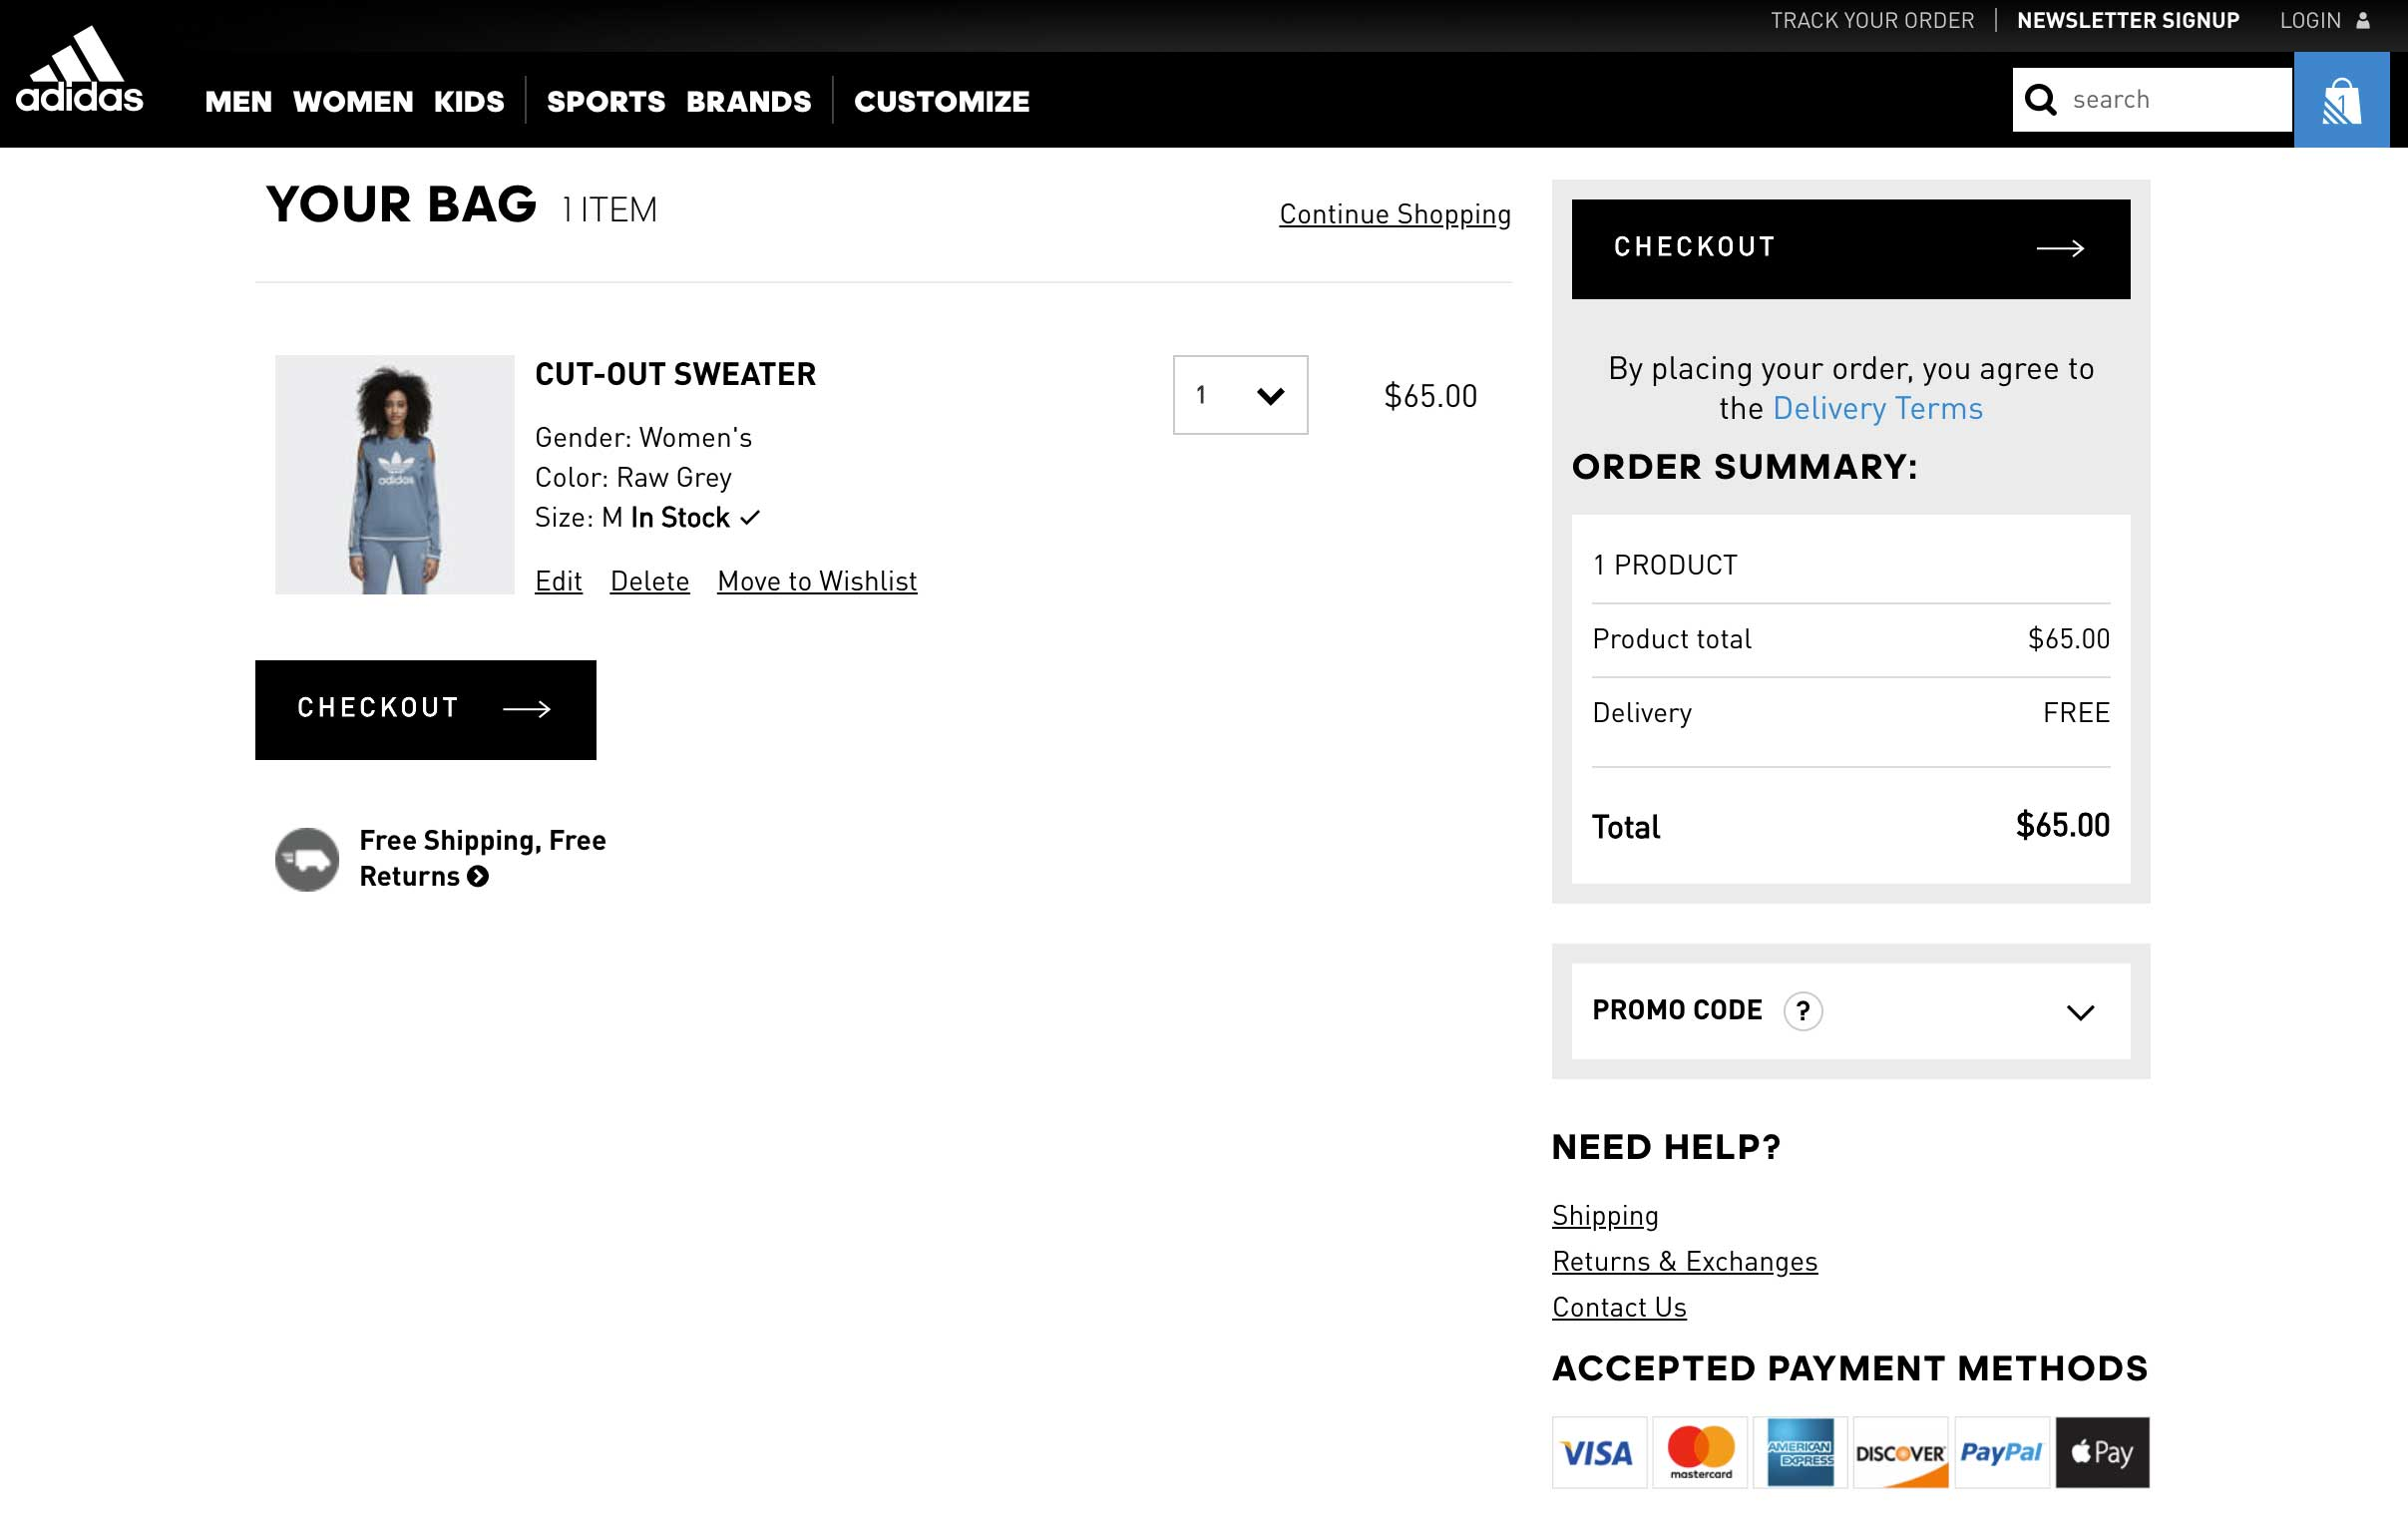 Various payment options on shopping cart page